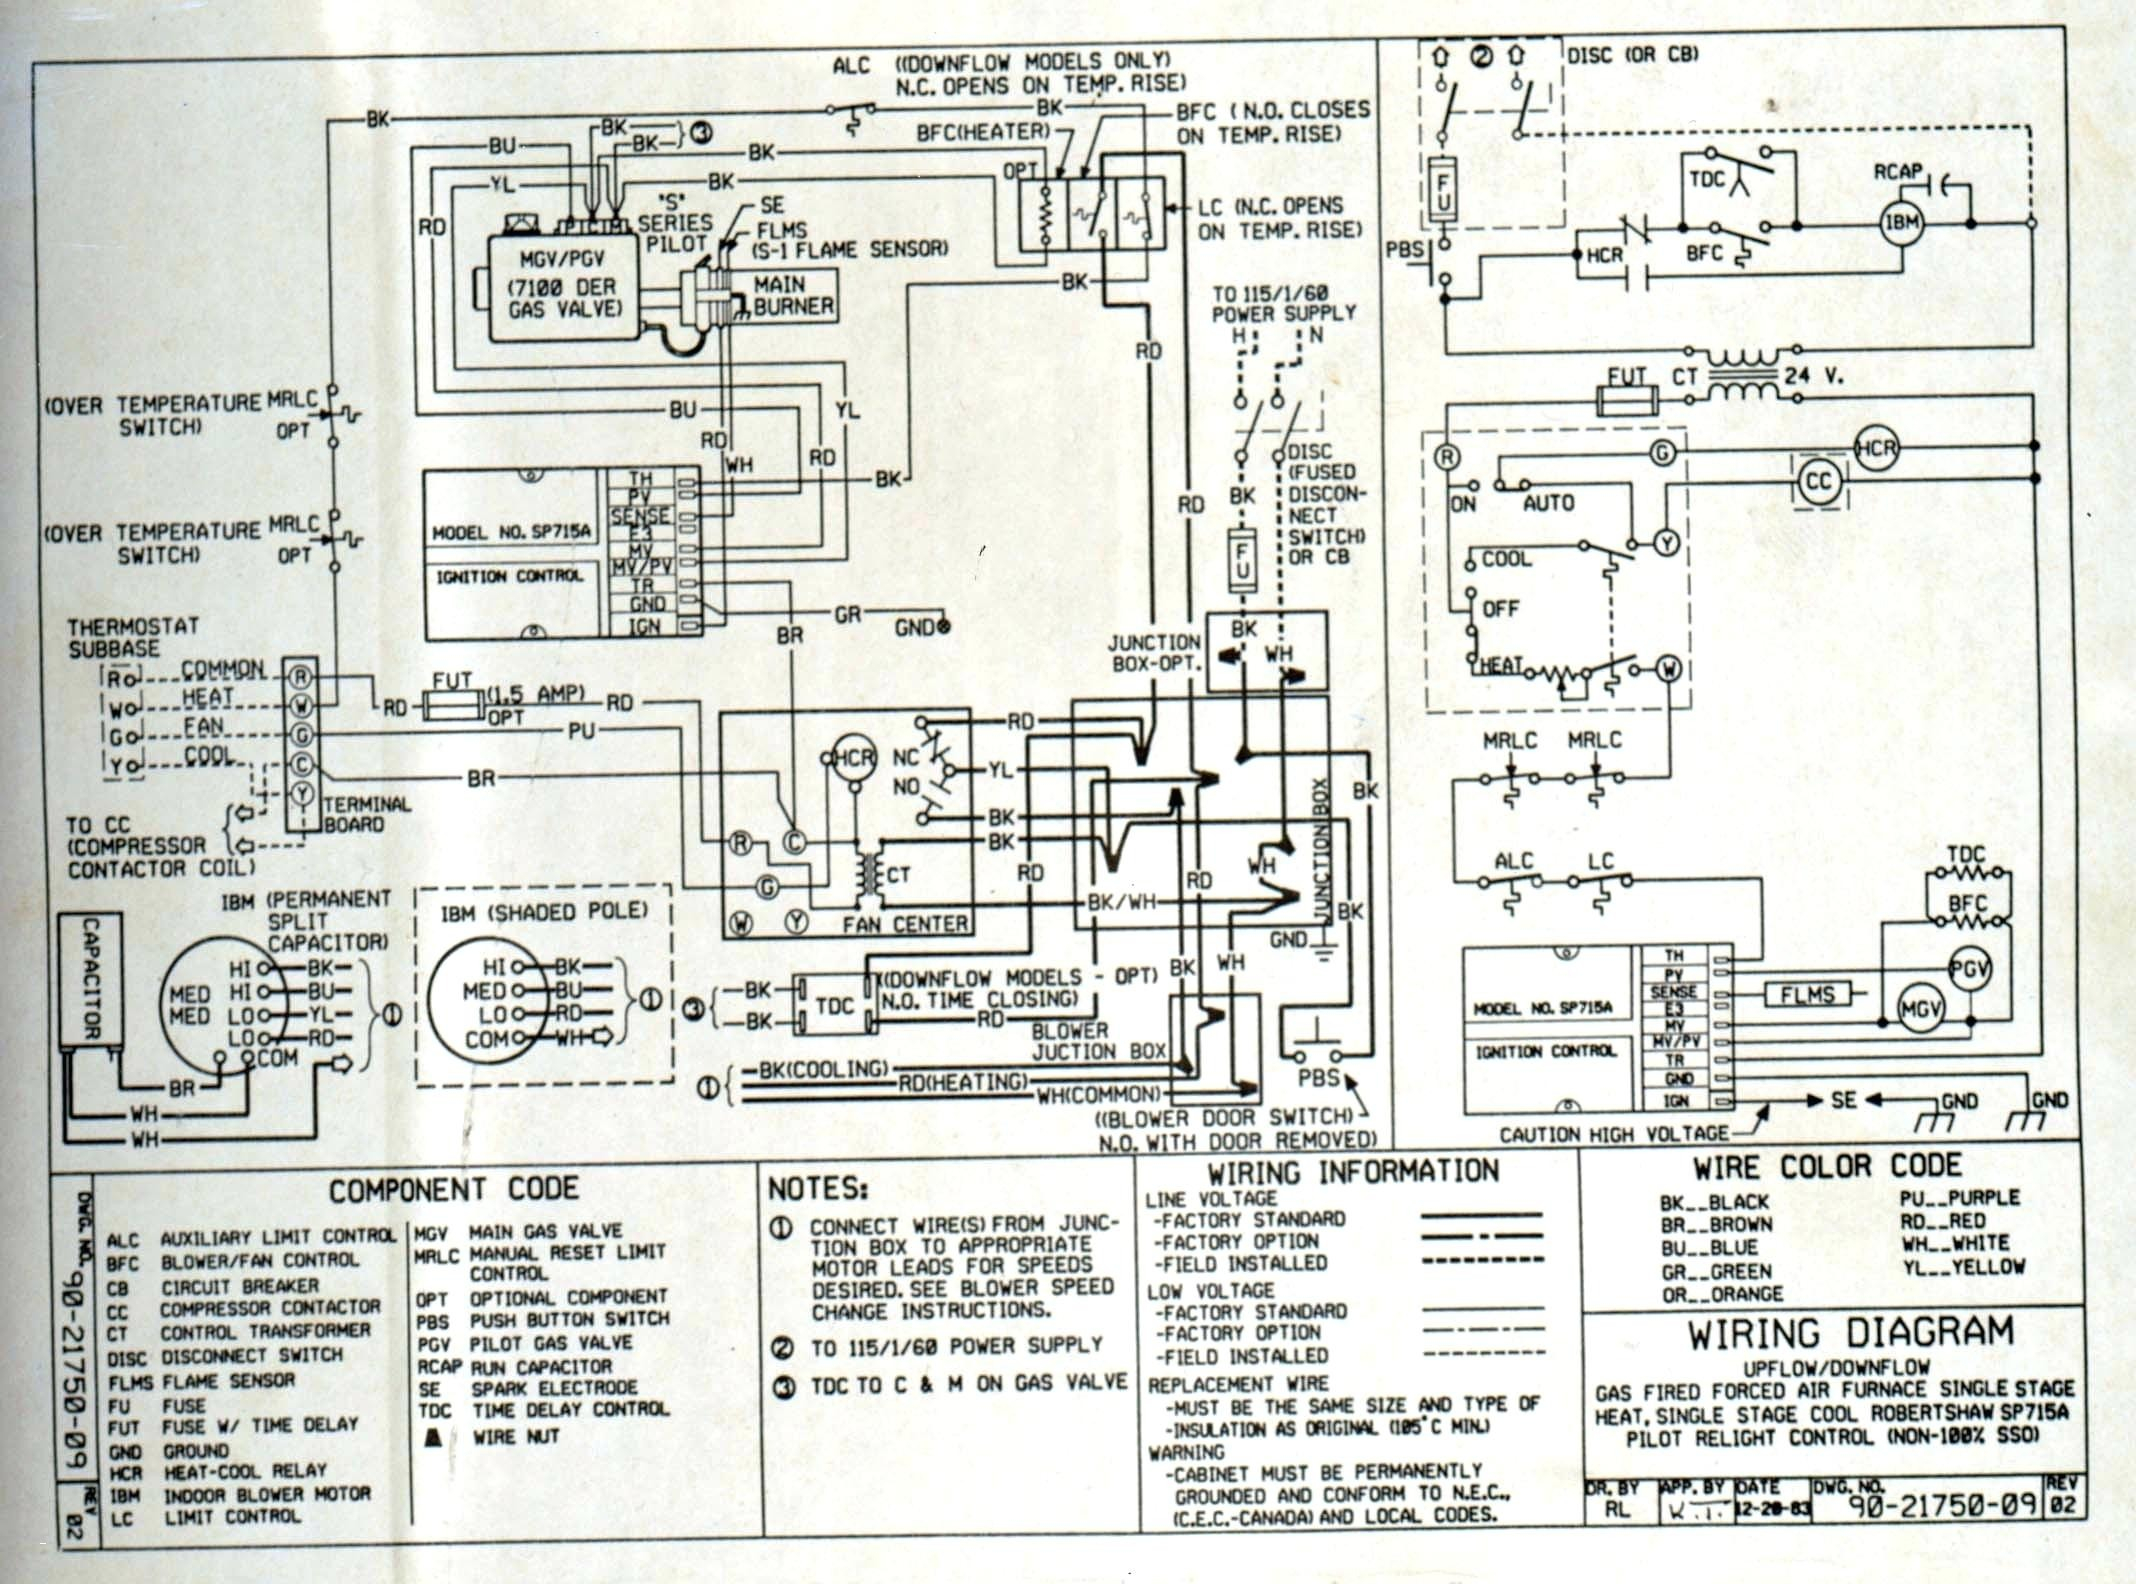 Ge Furnace Wiring Diagram Trusted Wiring Diagram Furnace Motor Replacement  Ge Furnace Motor Wiring